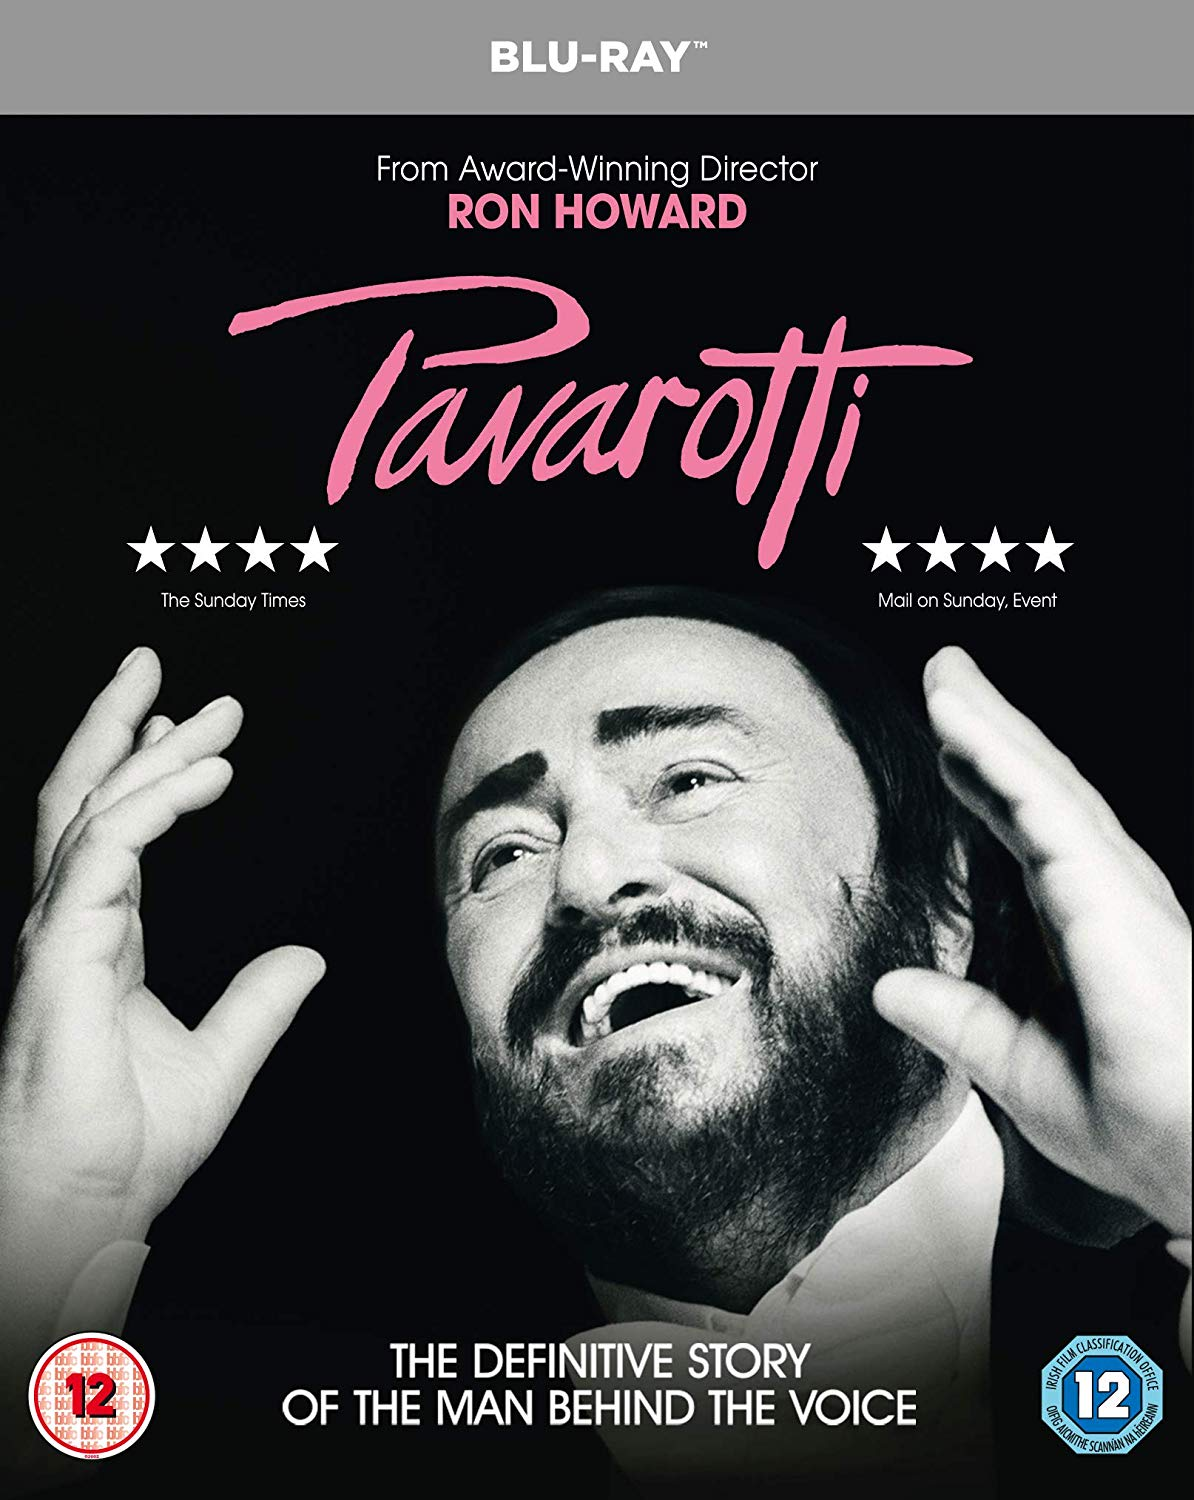 boom competitions - Pavarotti